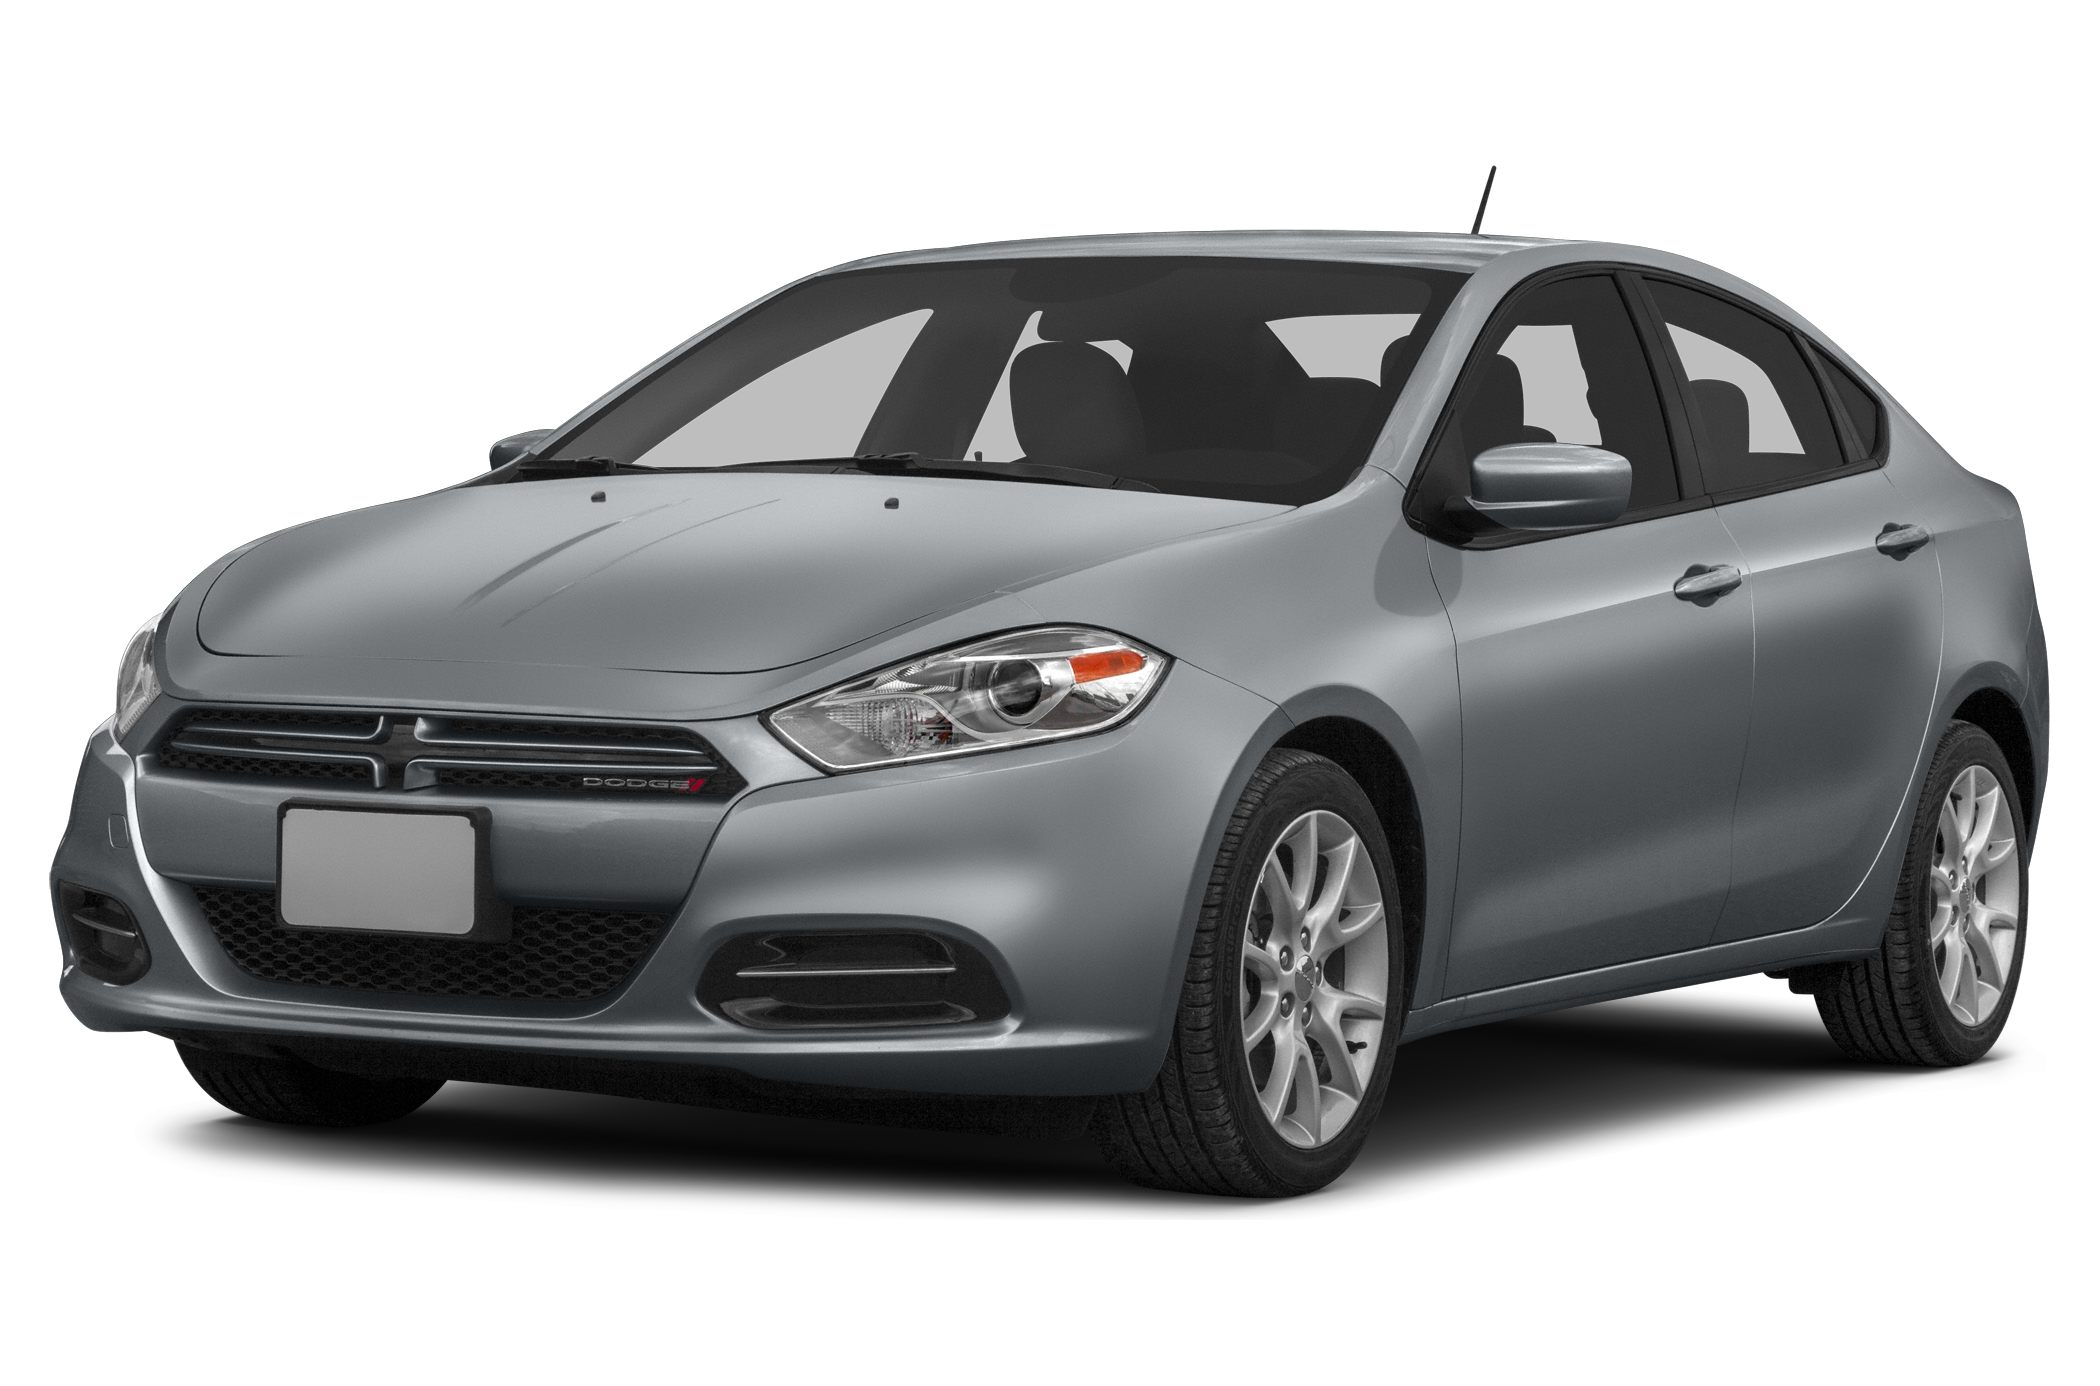 2015 Dodge Dart SXT Sedan for sale in Watertown for $23,025 with 0 miles.